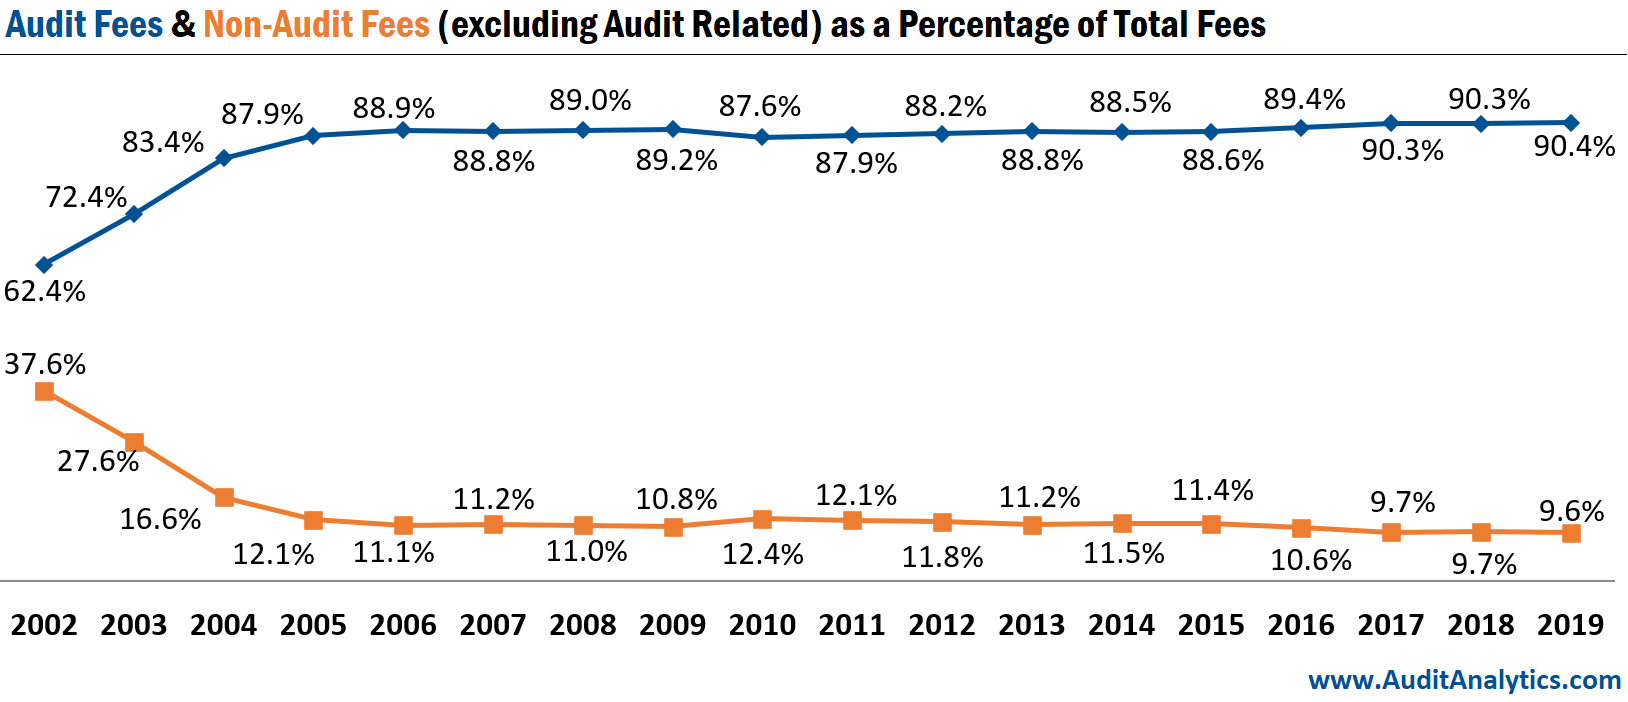 Audit Fees & Non-Audit Fees (Excluding Audit Related) as a Percentage of Total Fees